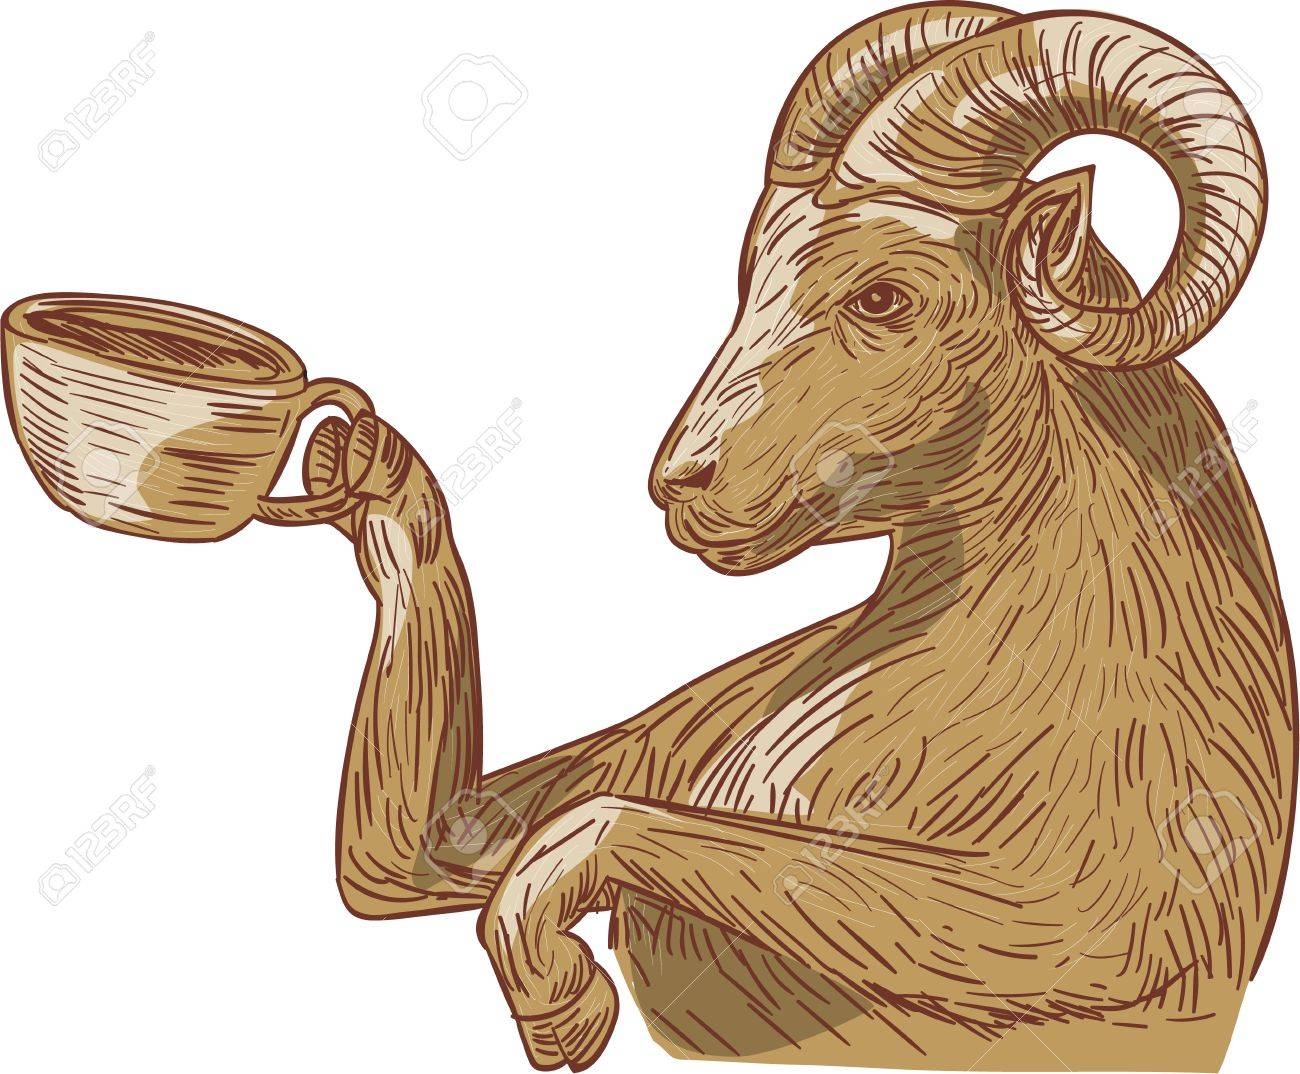 1300x1074 Drawing Sketch Style Illustration Of A Ram Goat Drinking Coffee